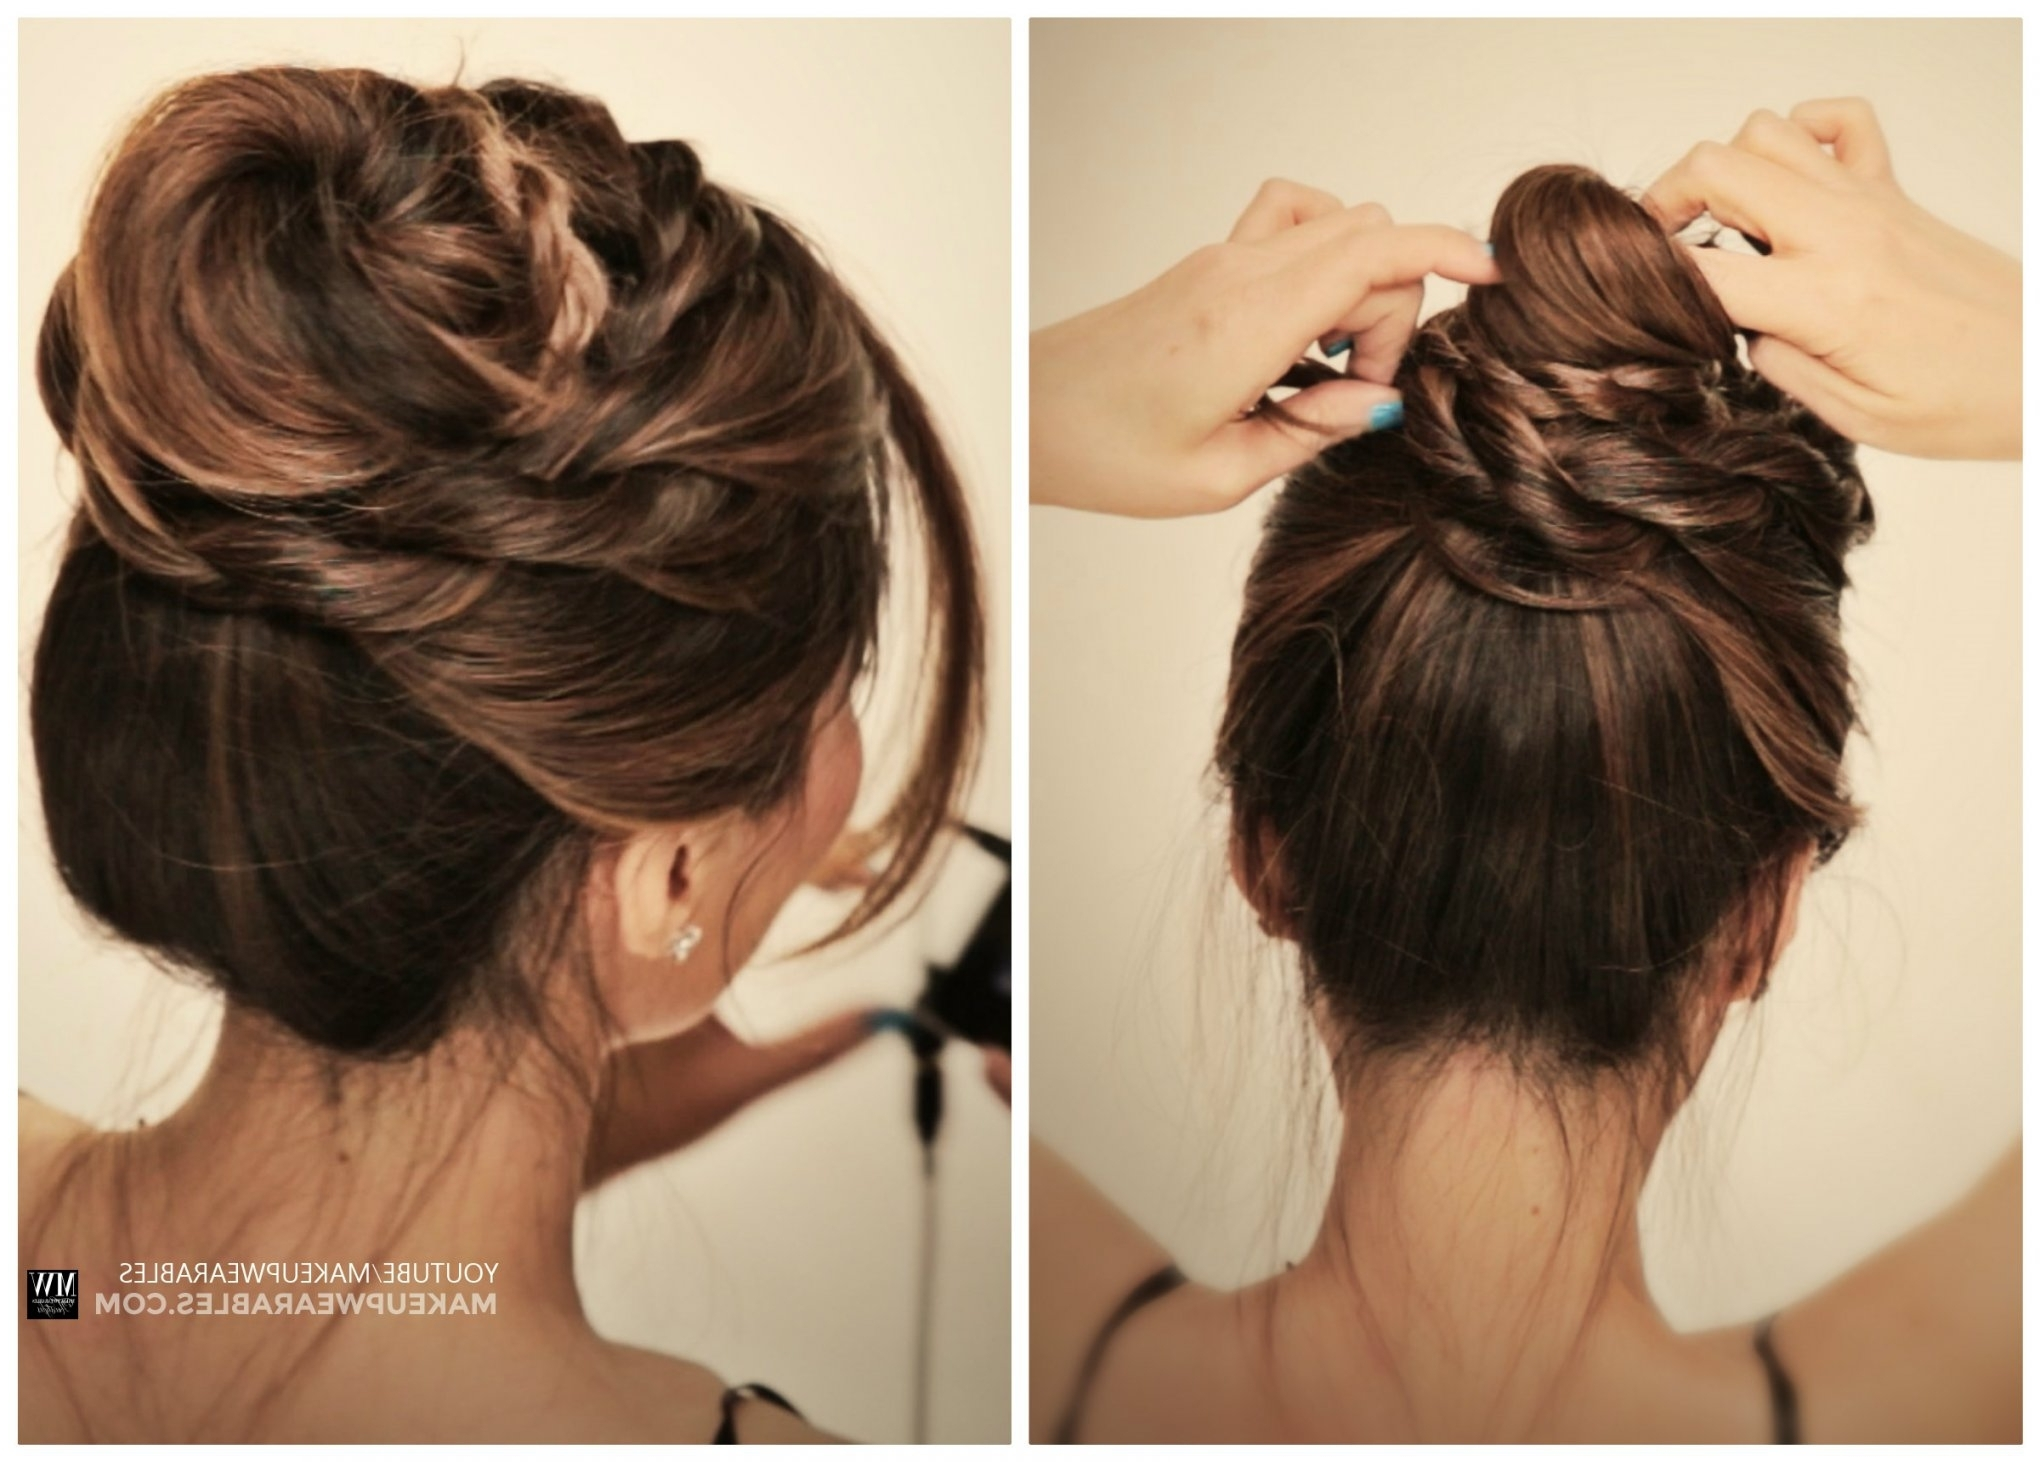 How To: 5 Amazingly Cute + Easy Hairstyles With A Simple Twist For Quick Easy Updo Hairstyles (View 3 of 15)